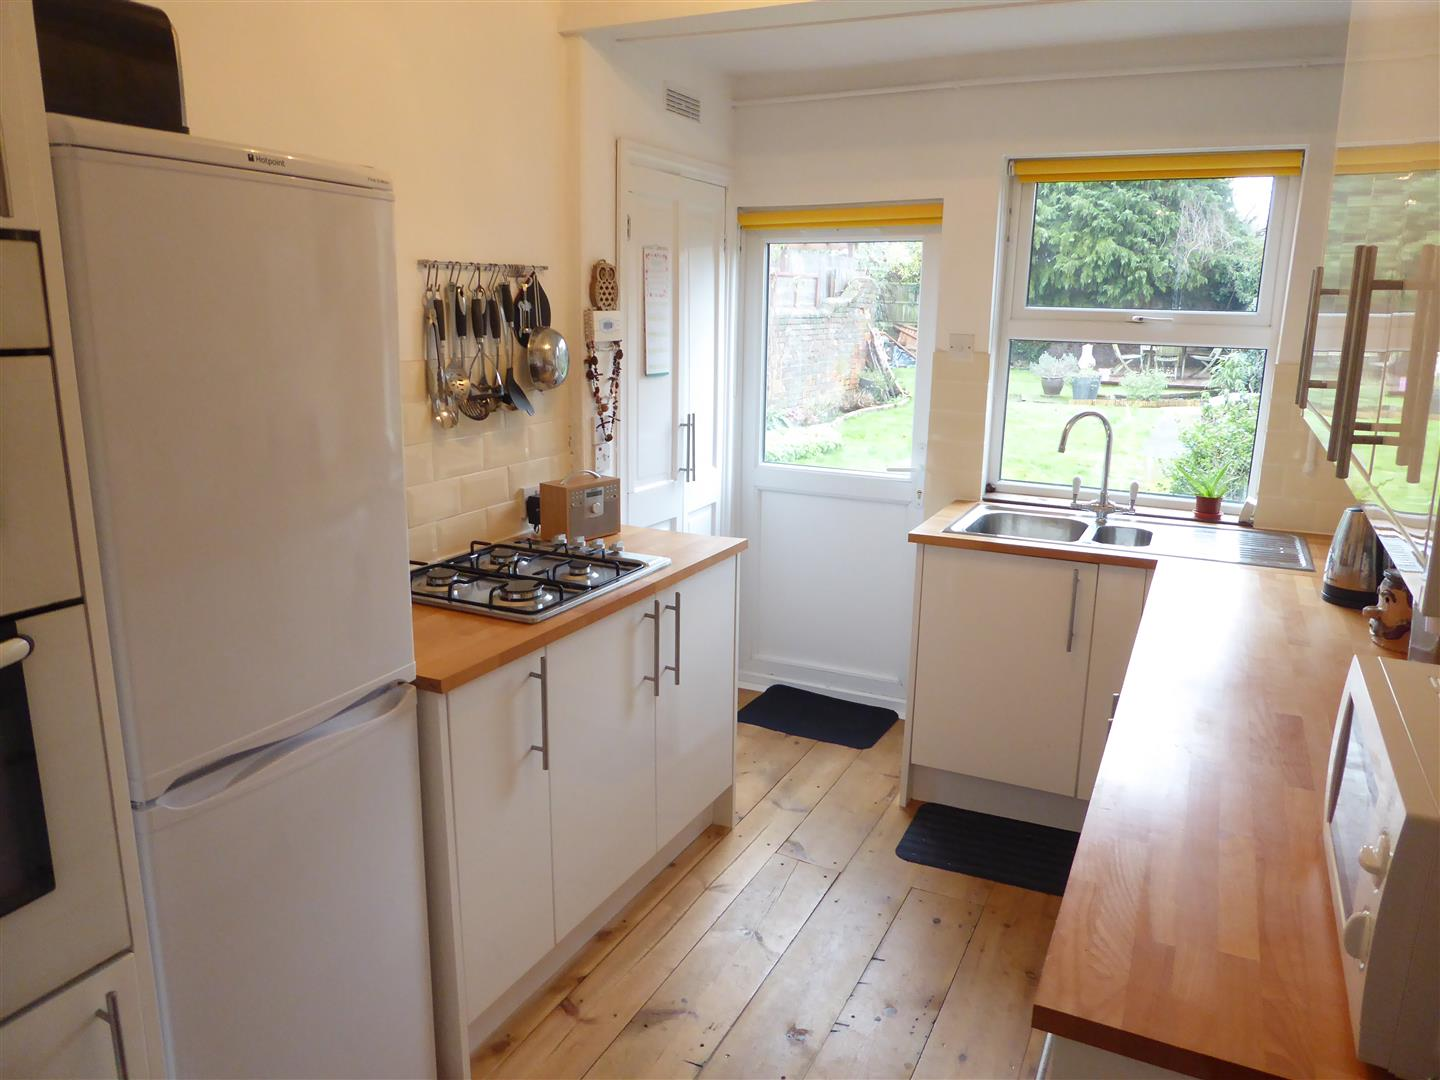 Double Glazed Kitchen Doors Property Details Sale Alexander Co